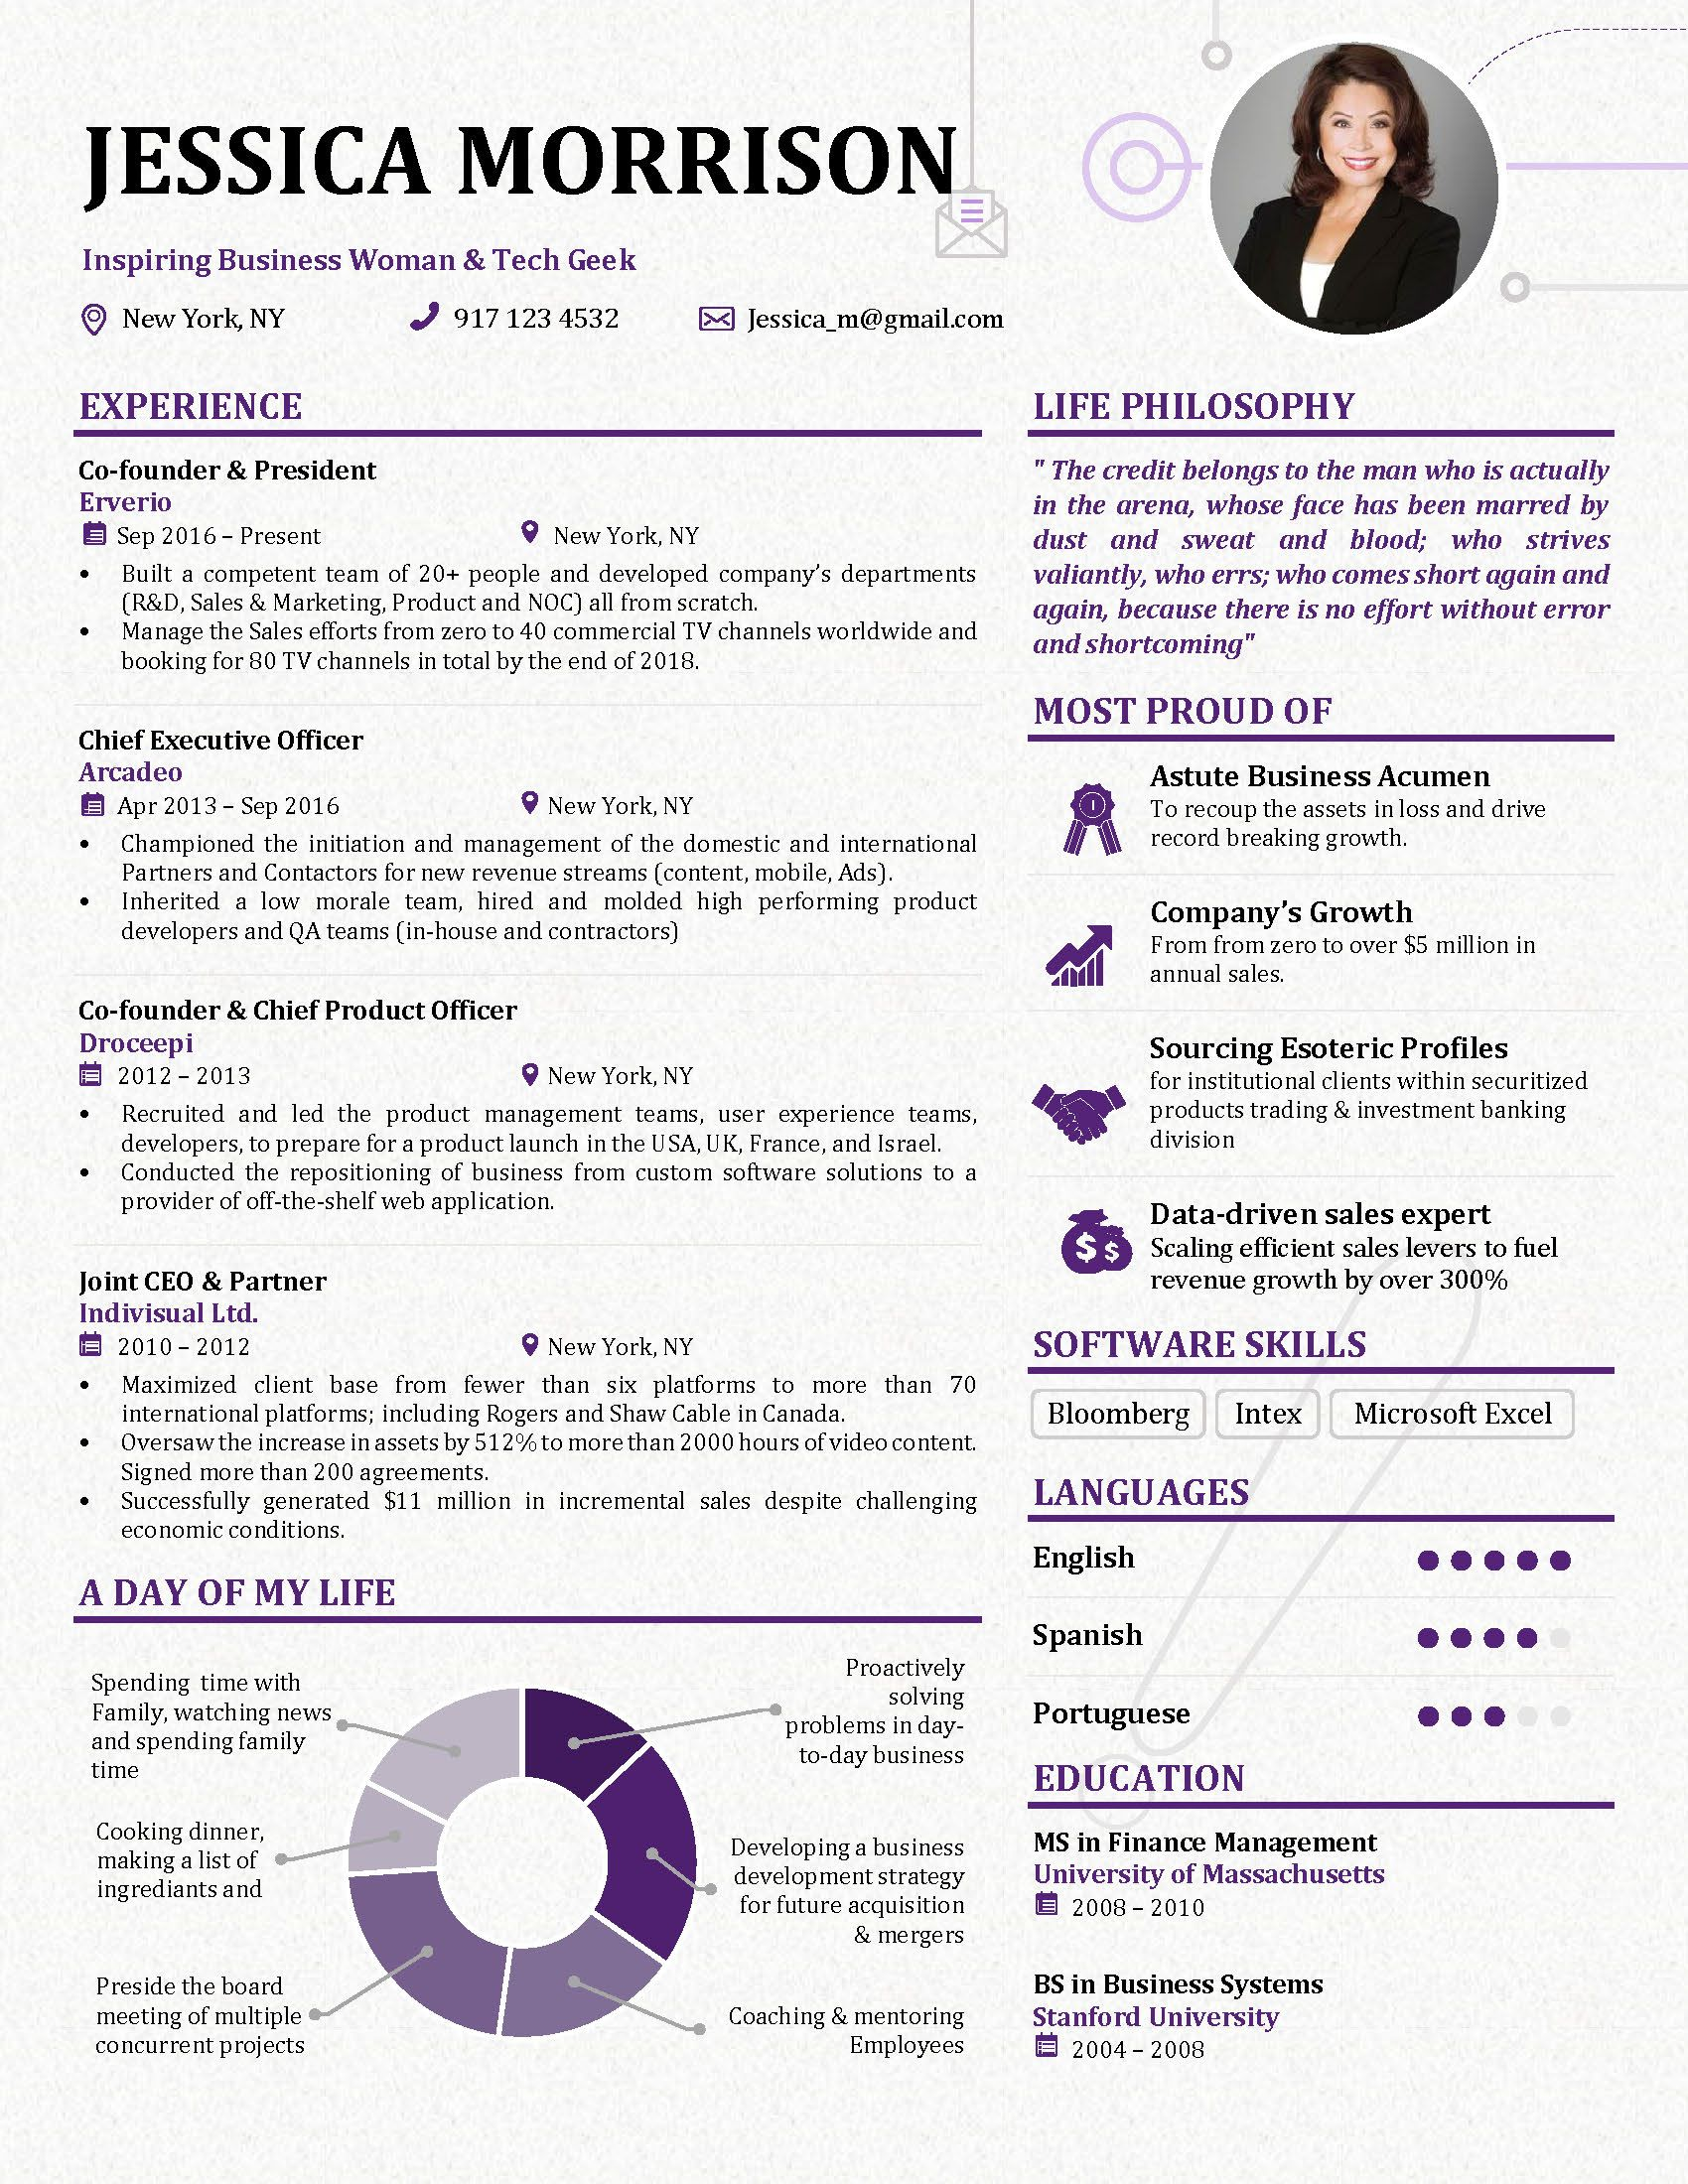 Resume Design Innovative Creative Resume Design Resume Examples Cv Design